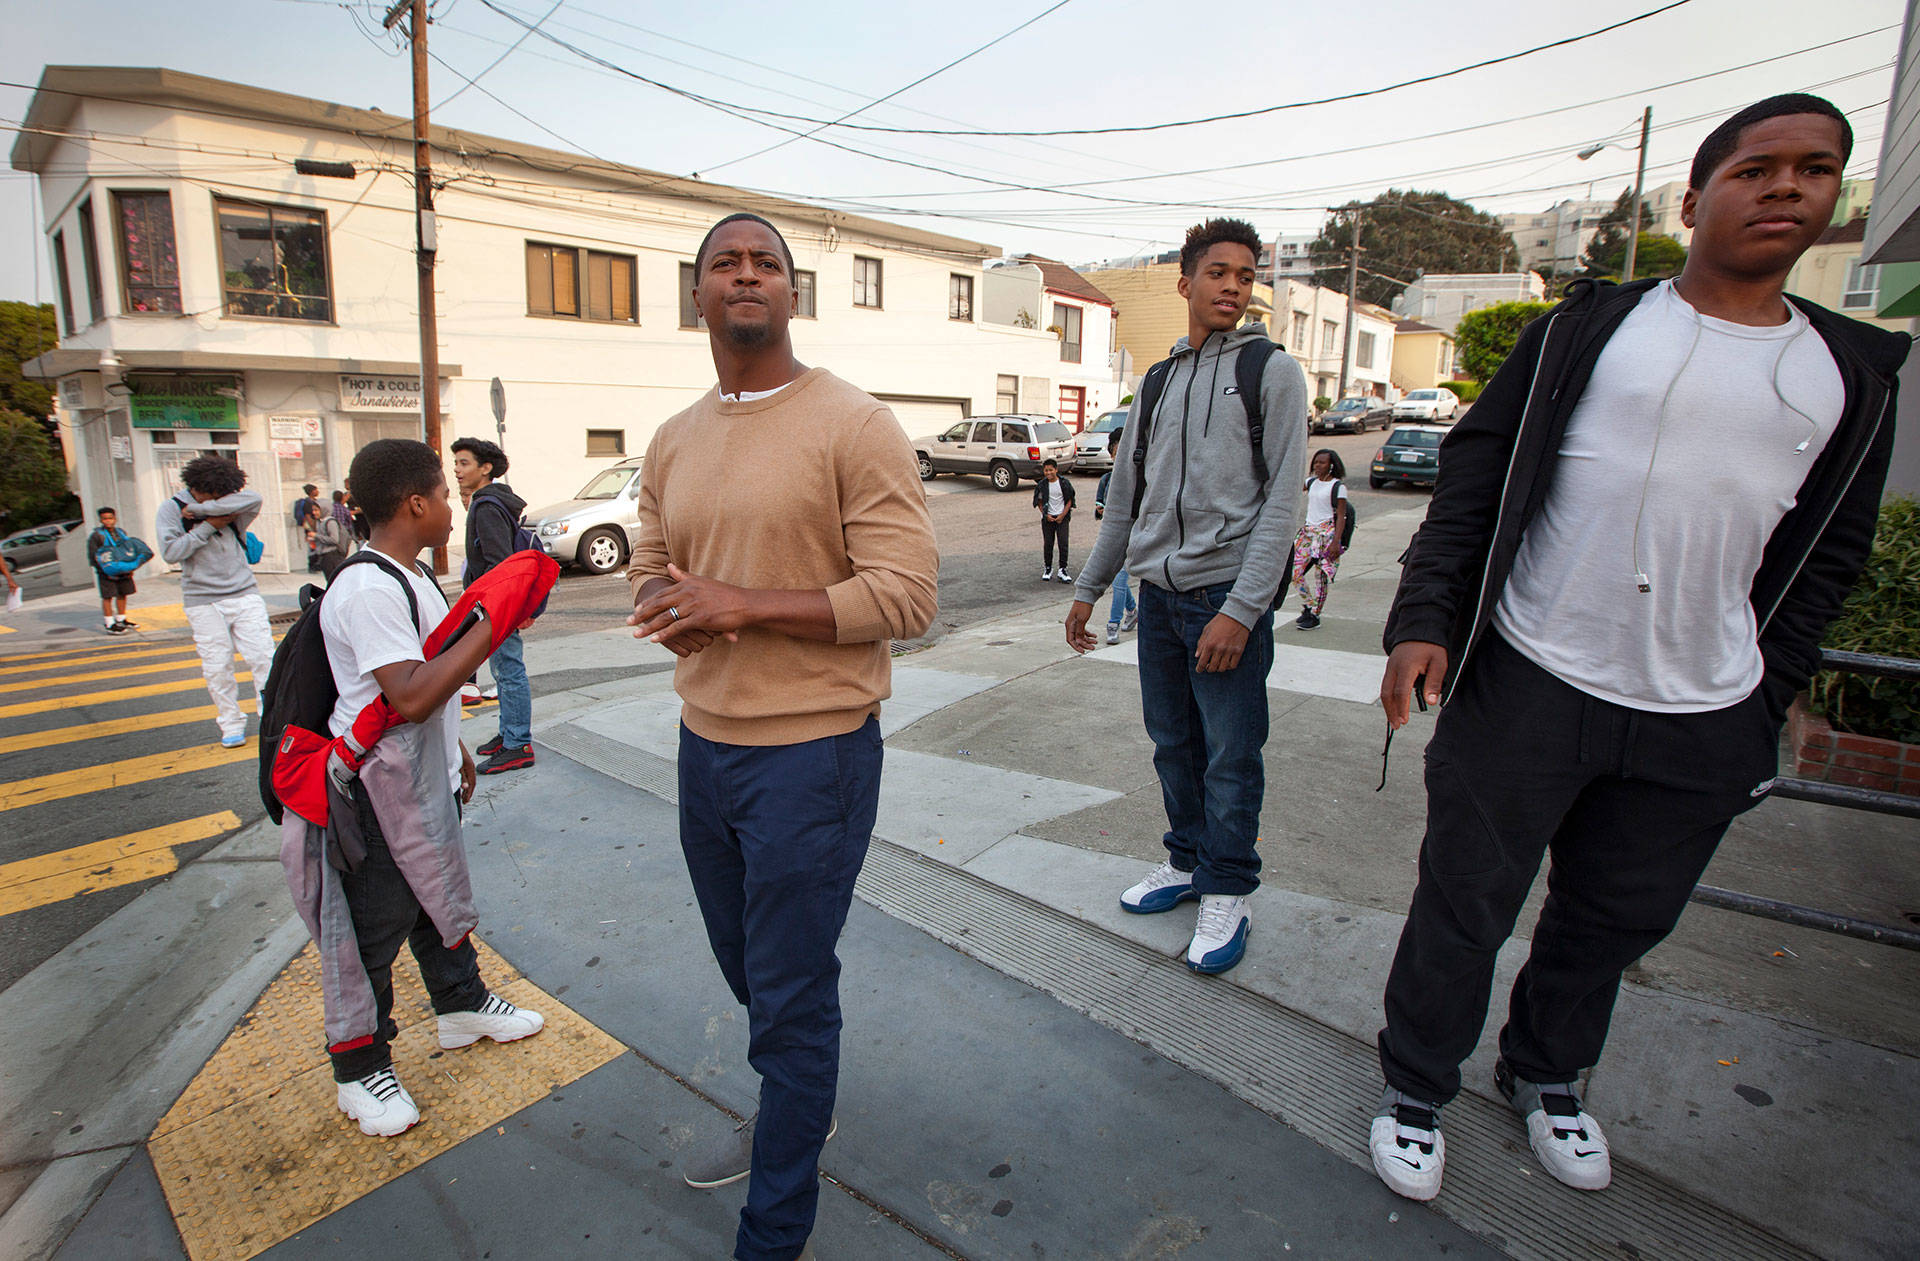 Principal Charleston Brown oversees dismissal at Willie L. Brown Jr. Middle School in San Francisco's Bayview neighborhood. His black students struggle to pass state tests in reading and math. Penni Gladstone/CALmatters